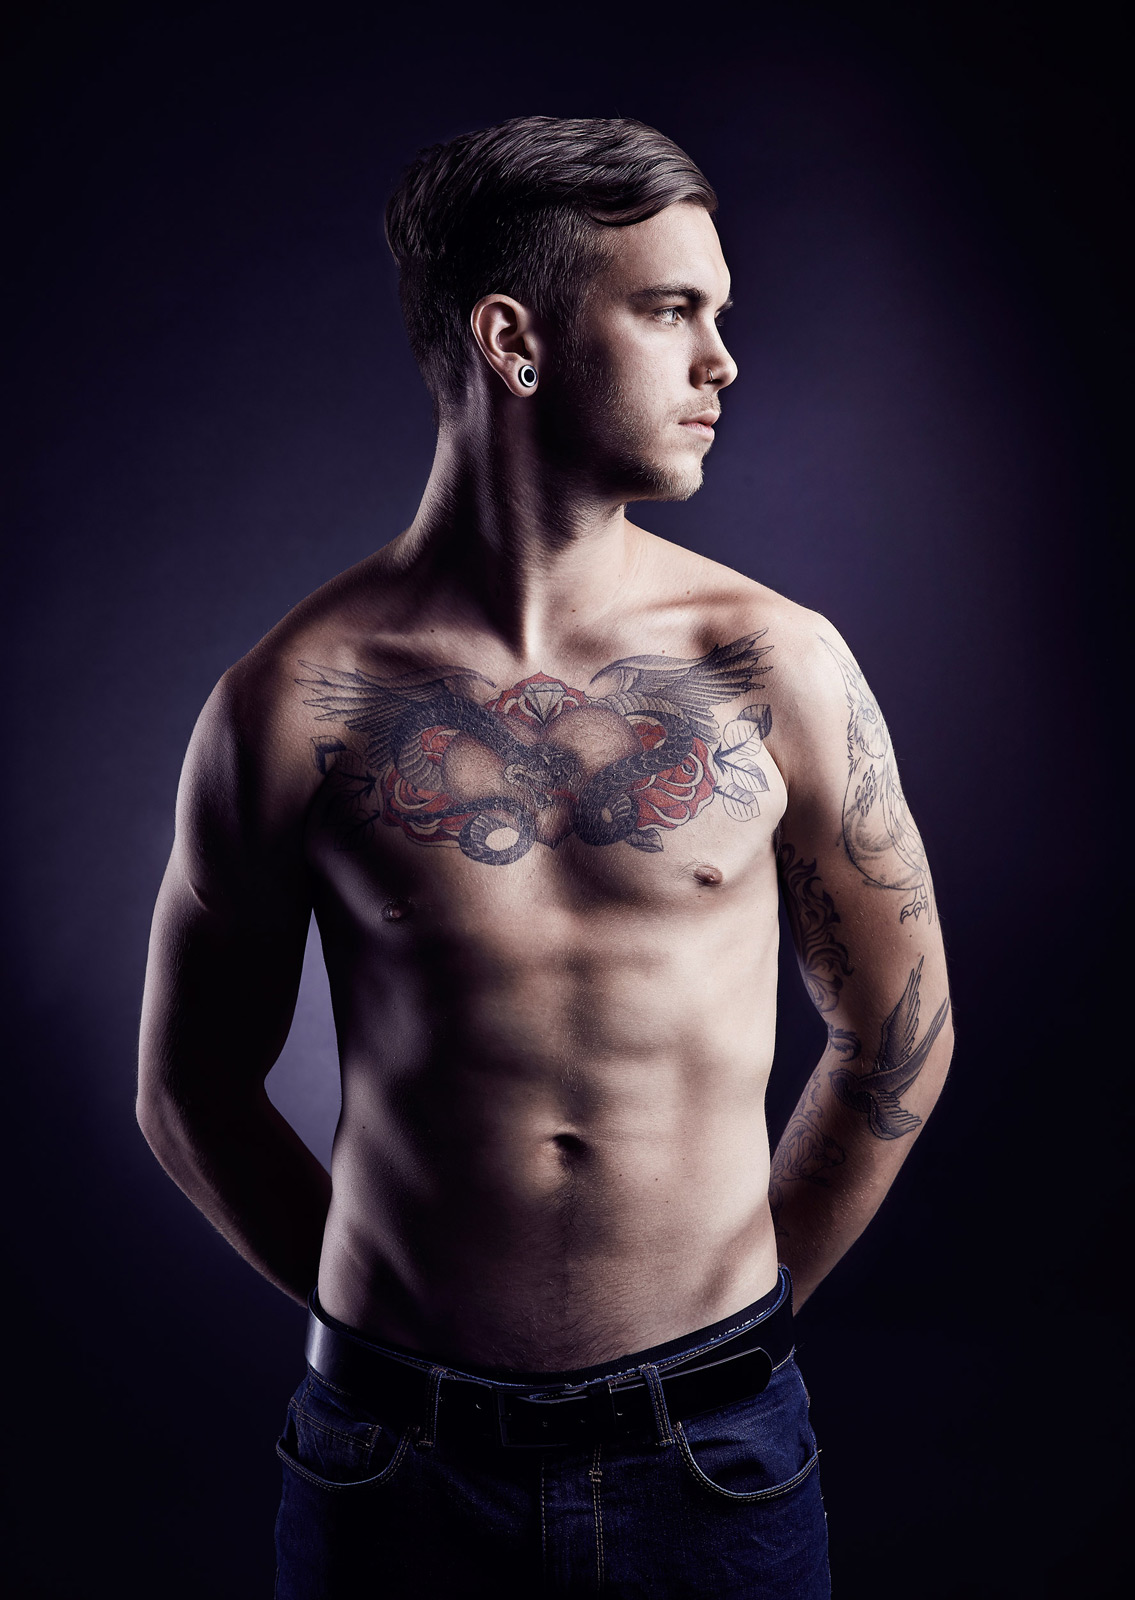 Man with shirt off showing tattoos